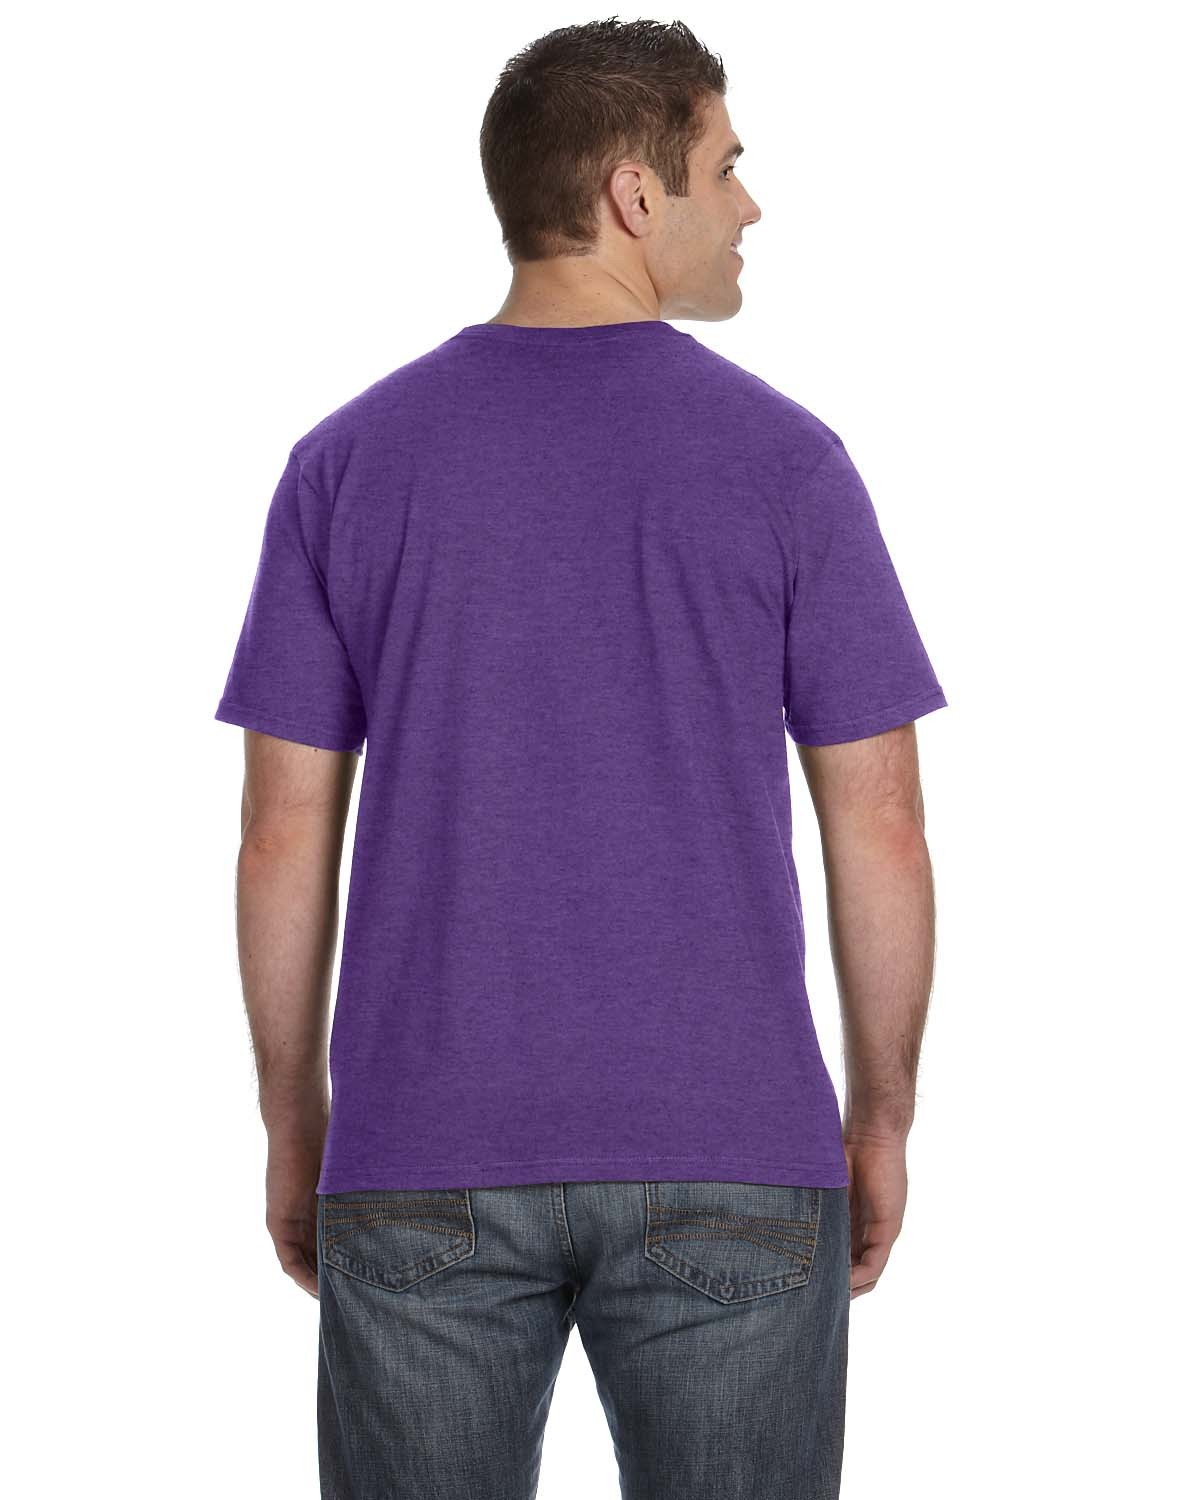 980 Anvil HEATHER PURPLE